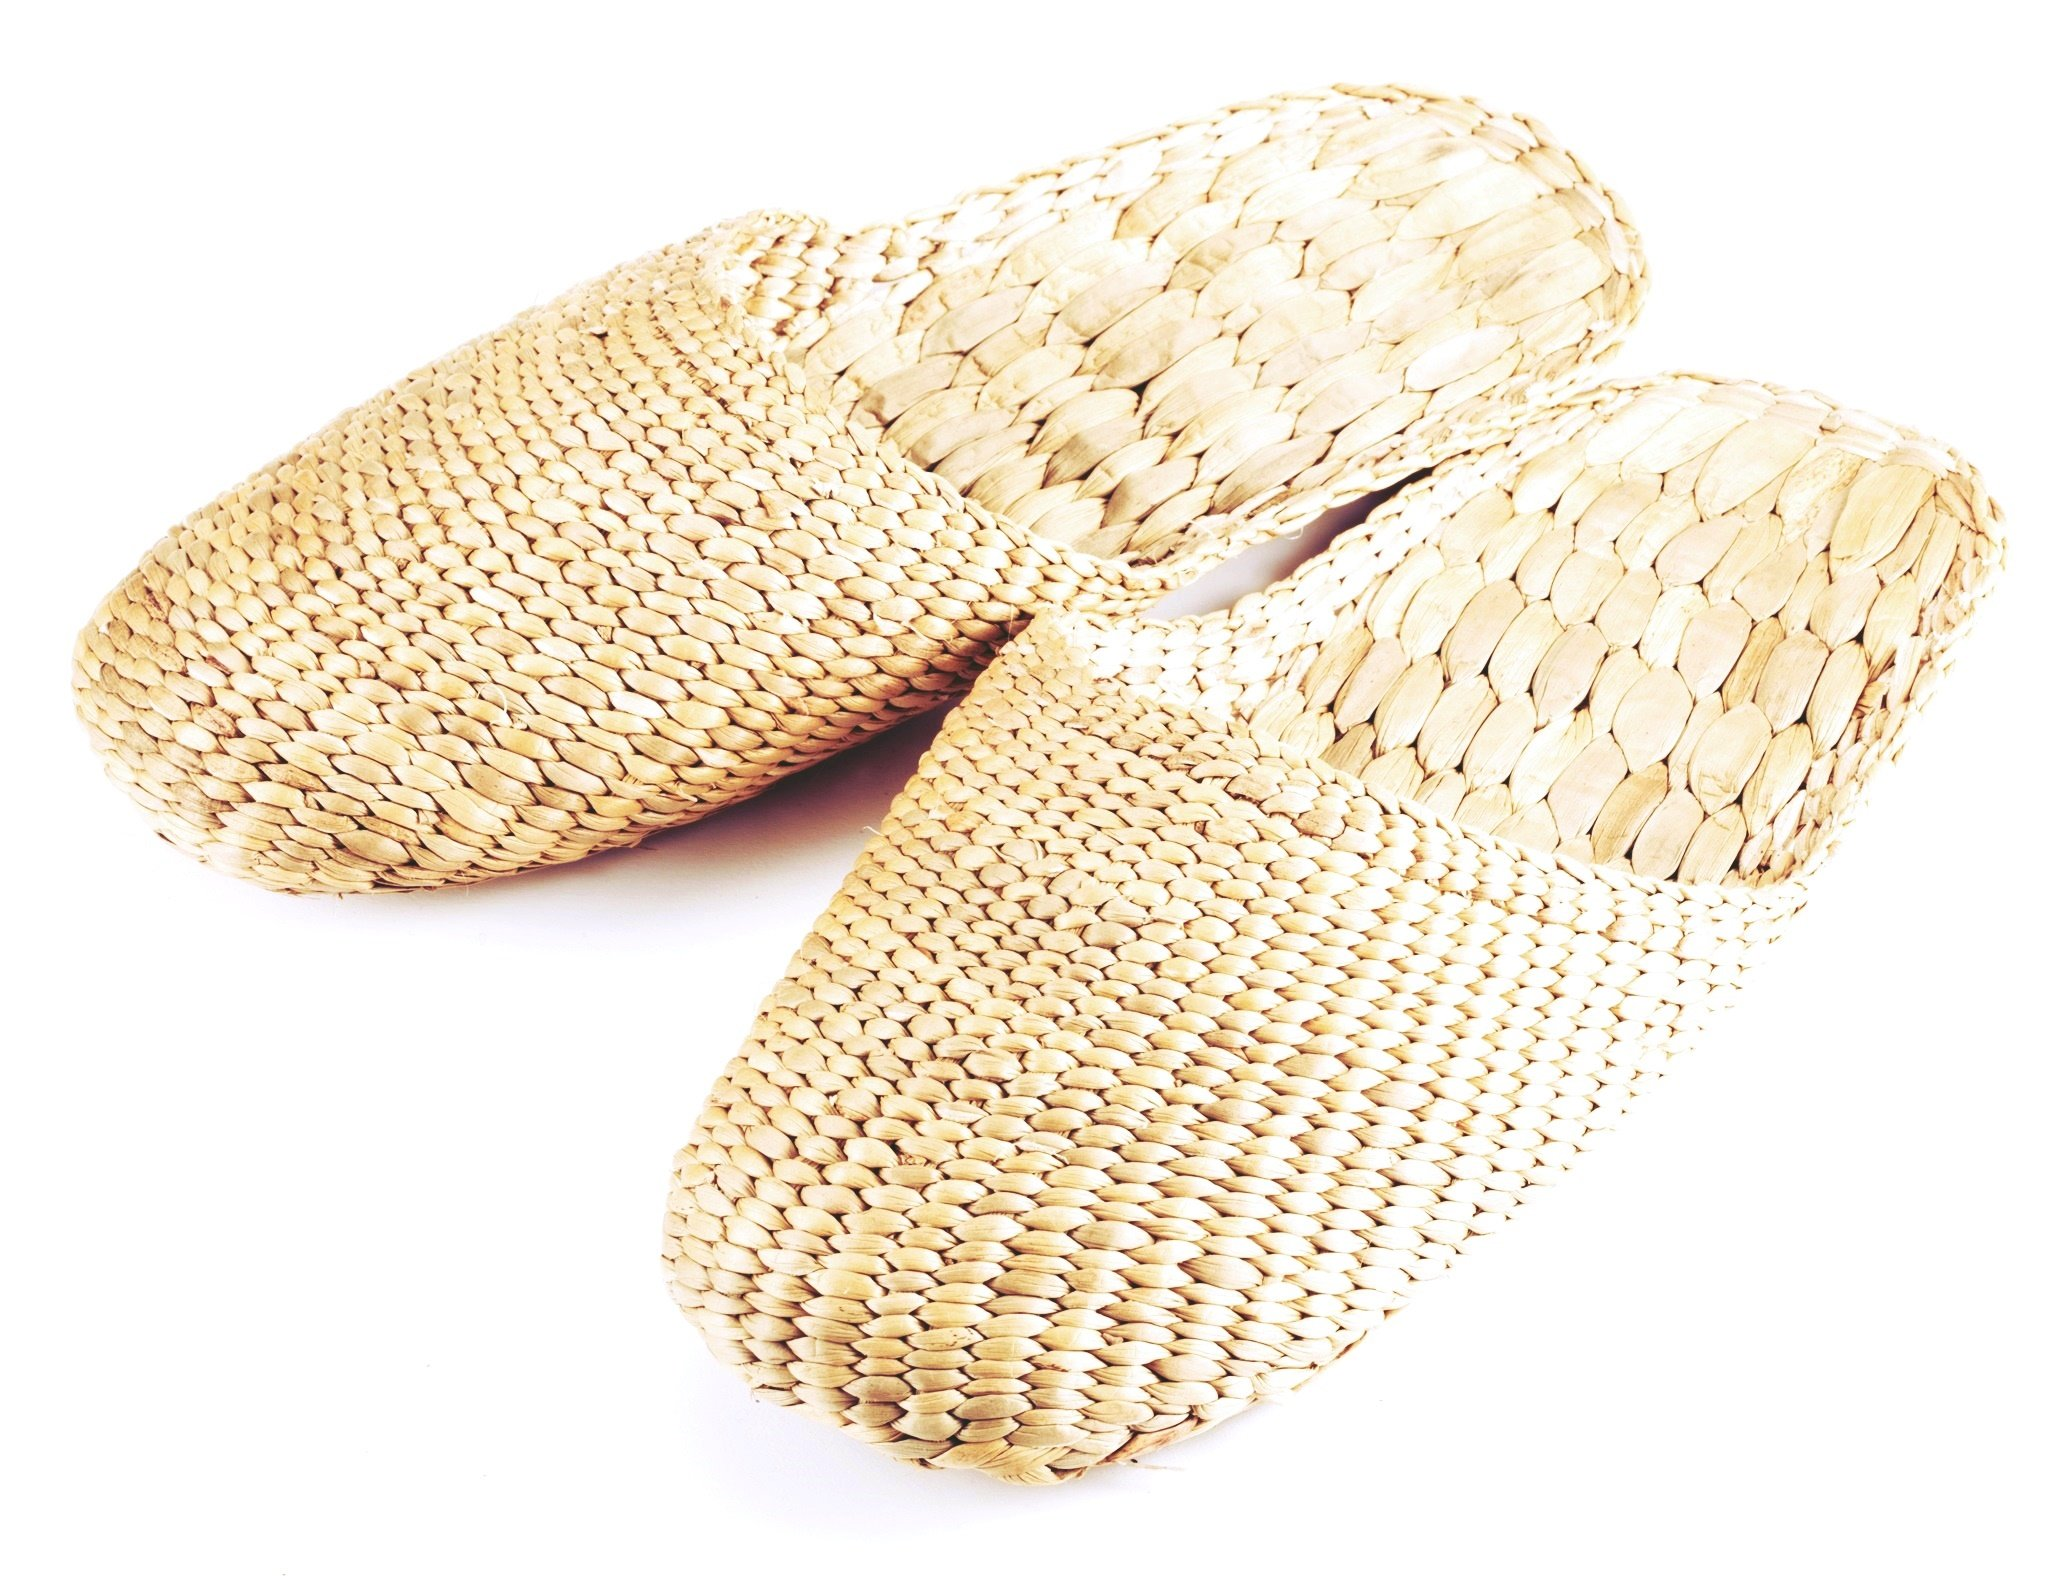 Gaia Guy 100% Natural Handmade Sandals/Slippers for Men and Ladies - Hand Woven Water Hyacinth - Knitted Style Large (L10.5'' x 3.5'' Approx.)